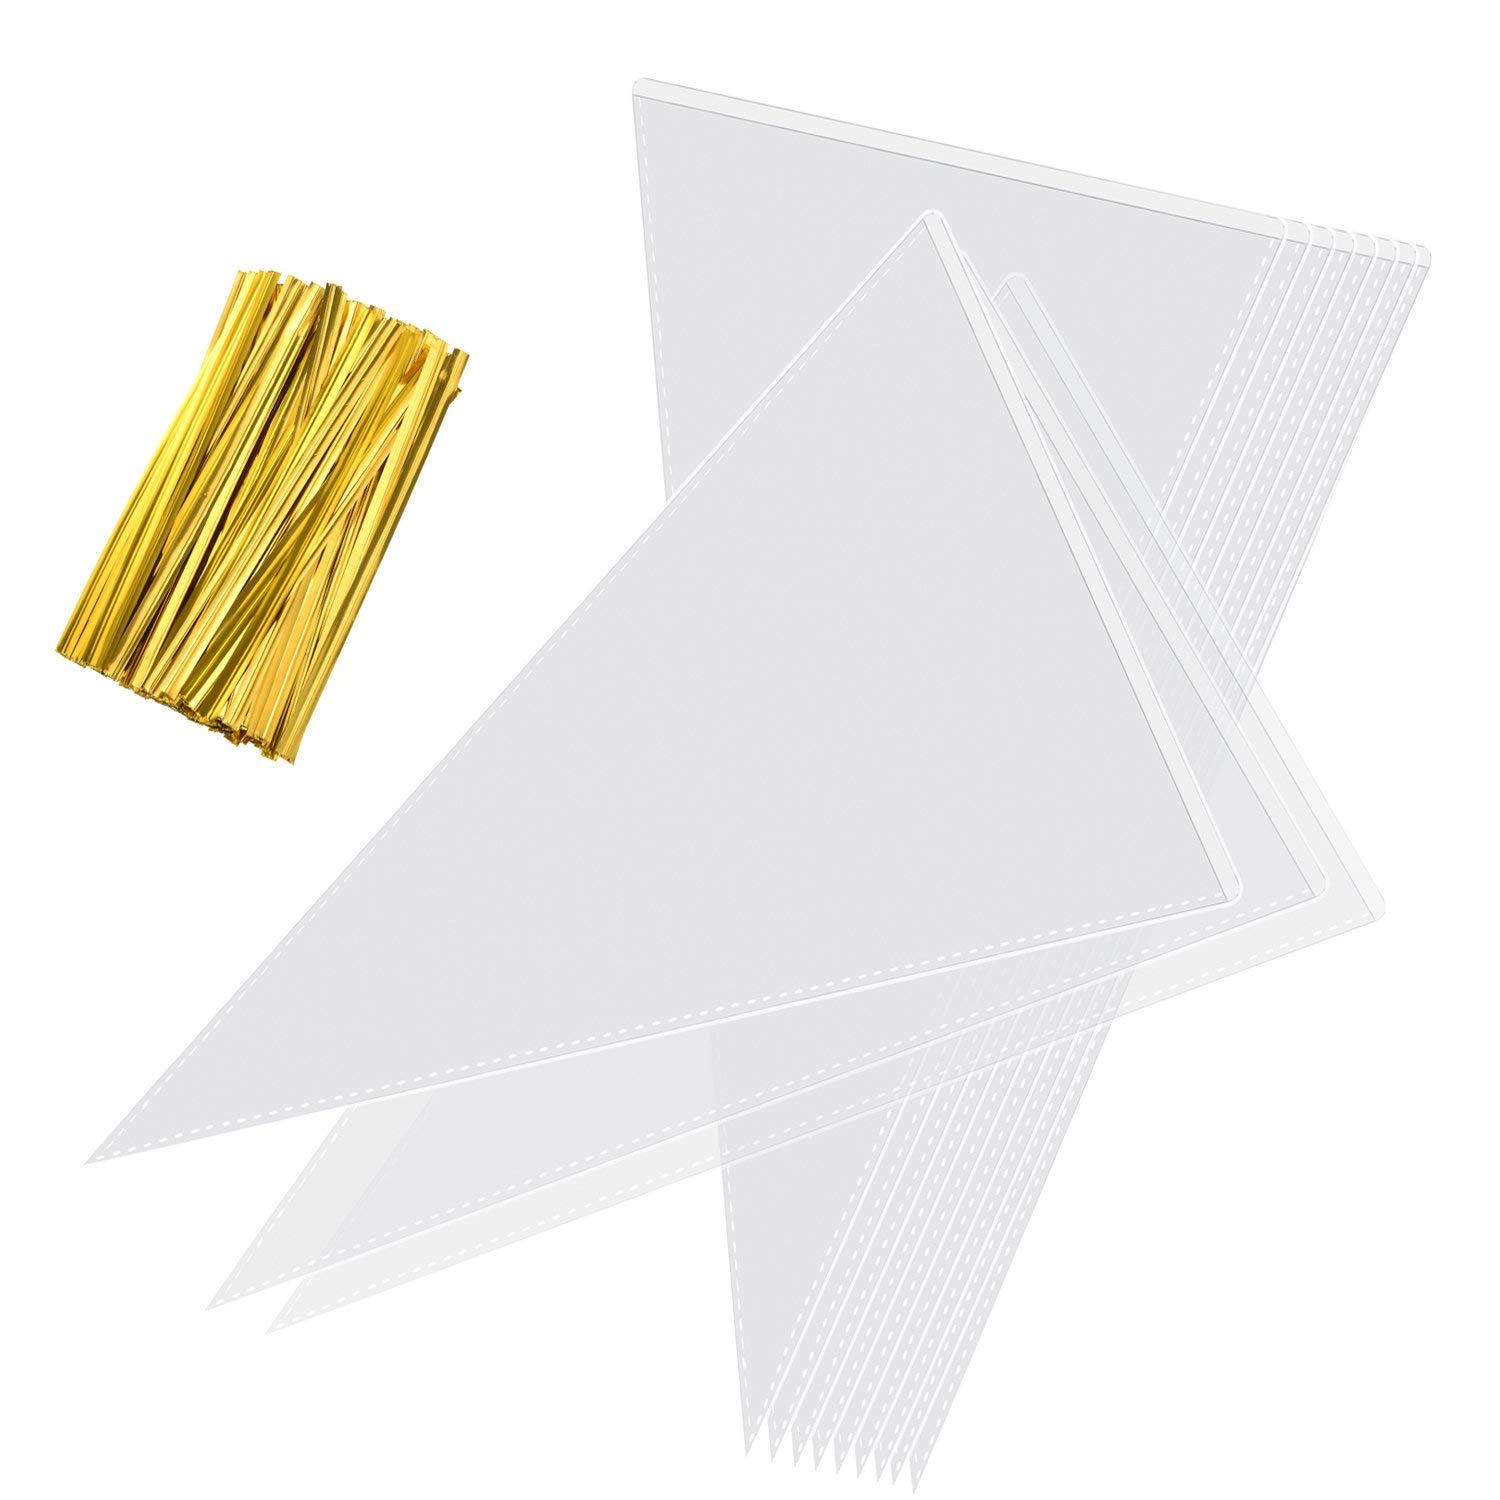 100 Pieces Clear Cone Bags Transparent Sweet Treat Cello Bags